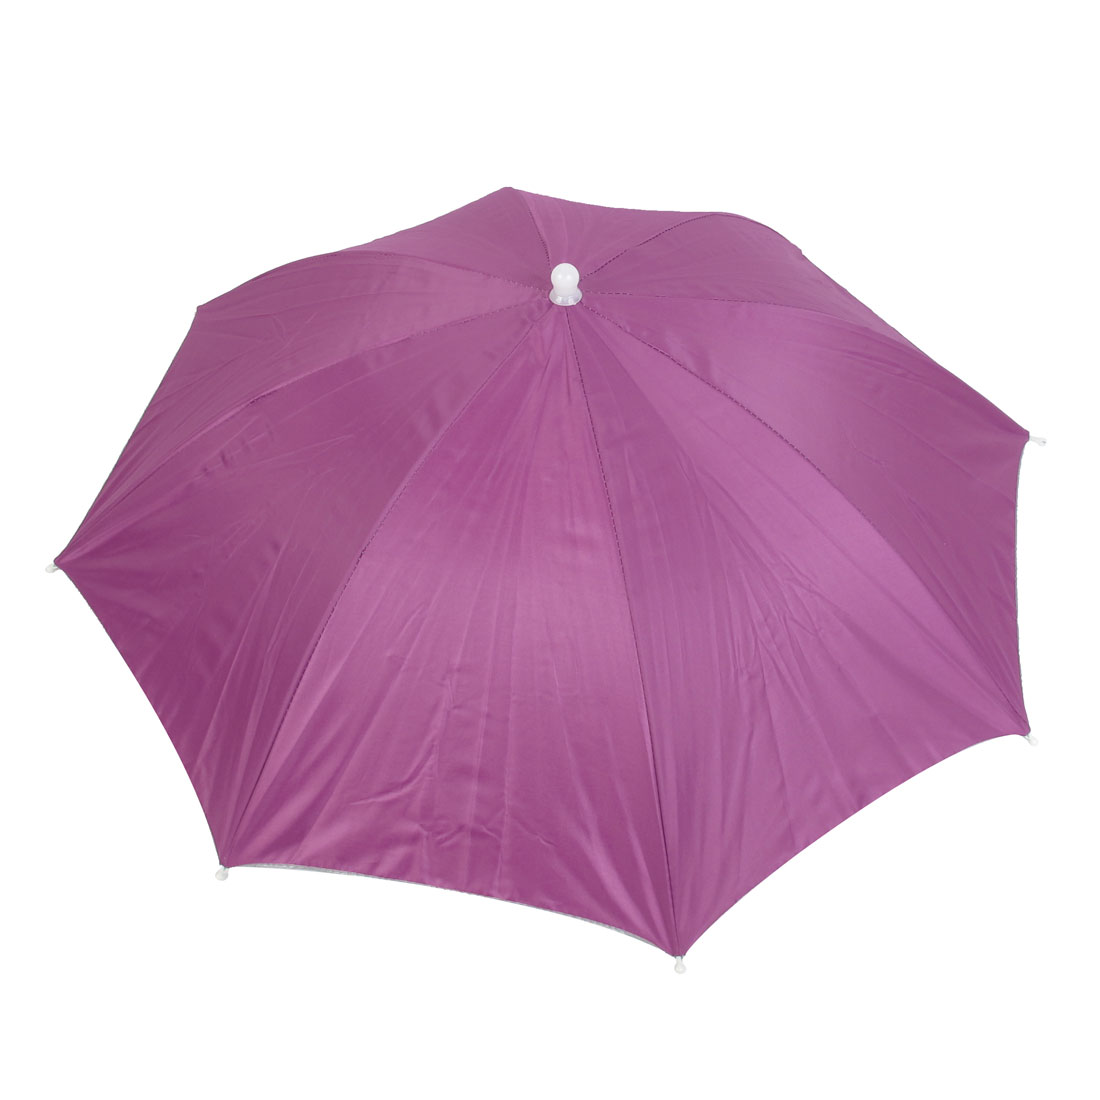 Beach Sun Shine Stormy Sports Fishing Storage Umbrella Hat Cap Fuchsia